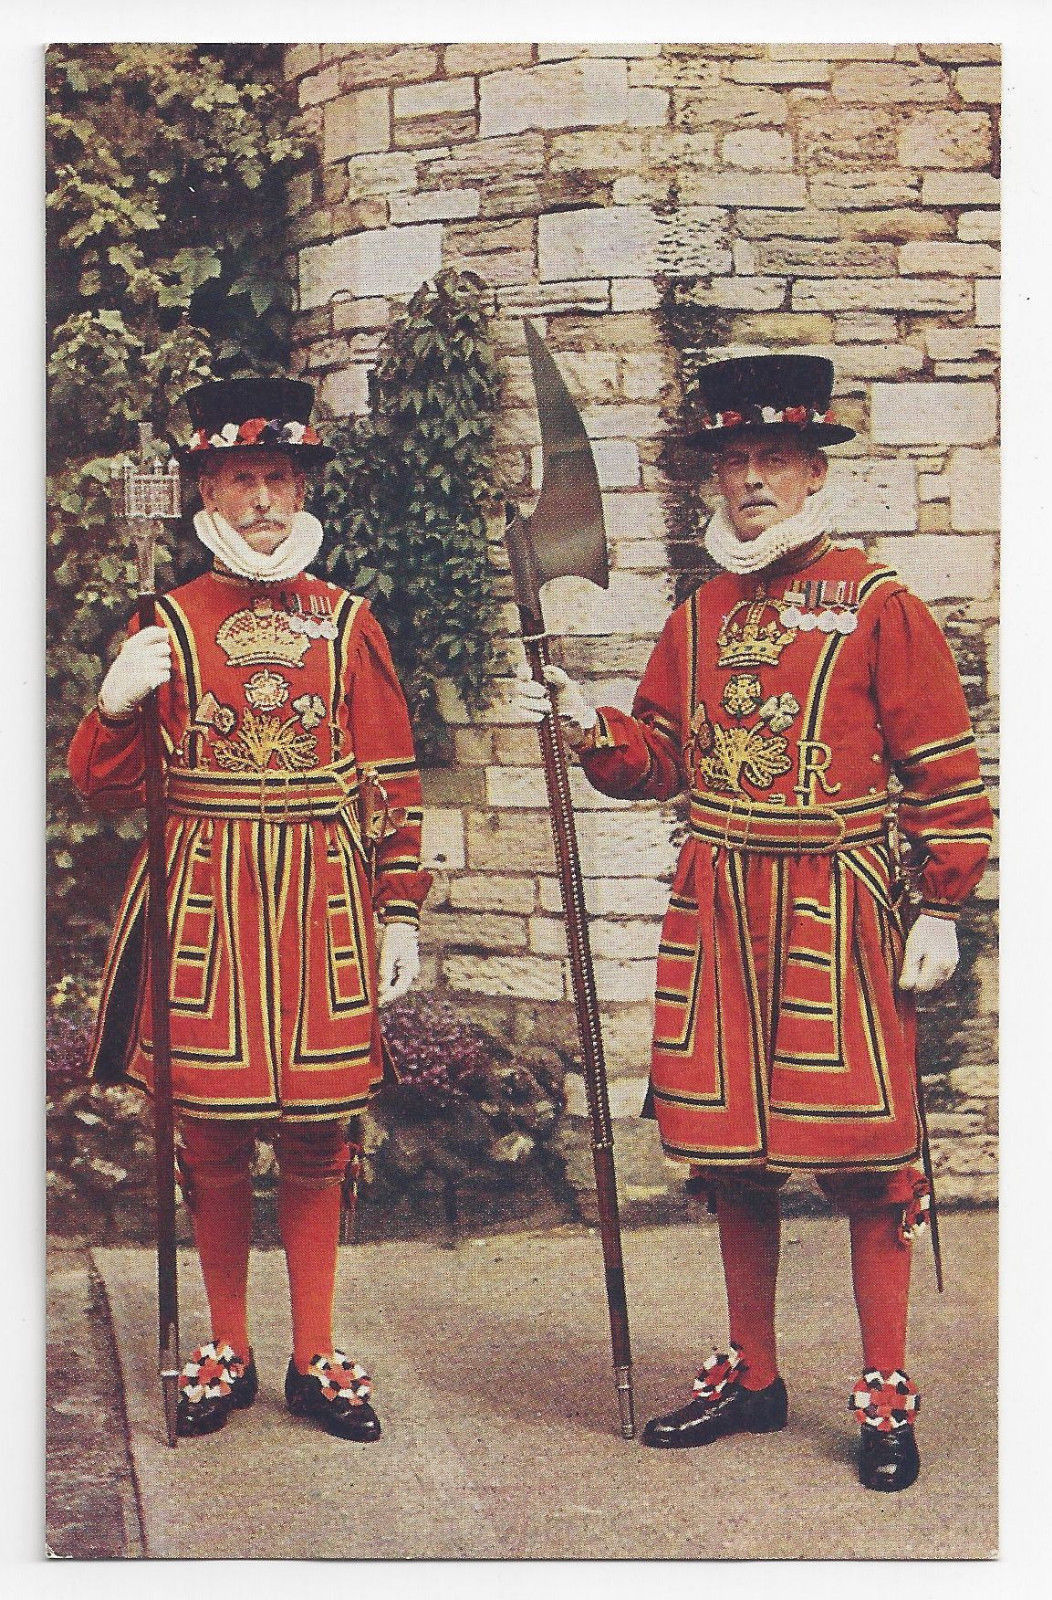 UK England Guards Tower of London Chief Warder Yeoman Uniforms Vintage Postcard